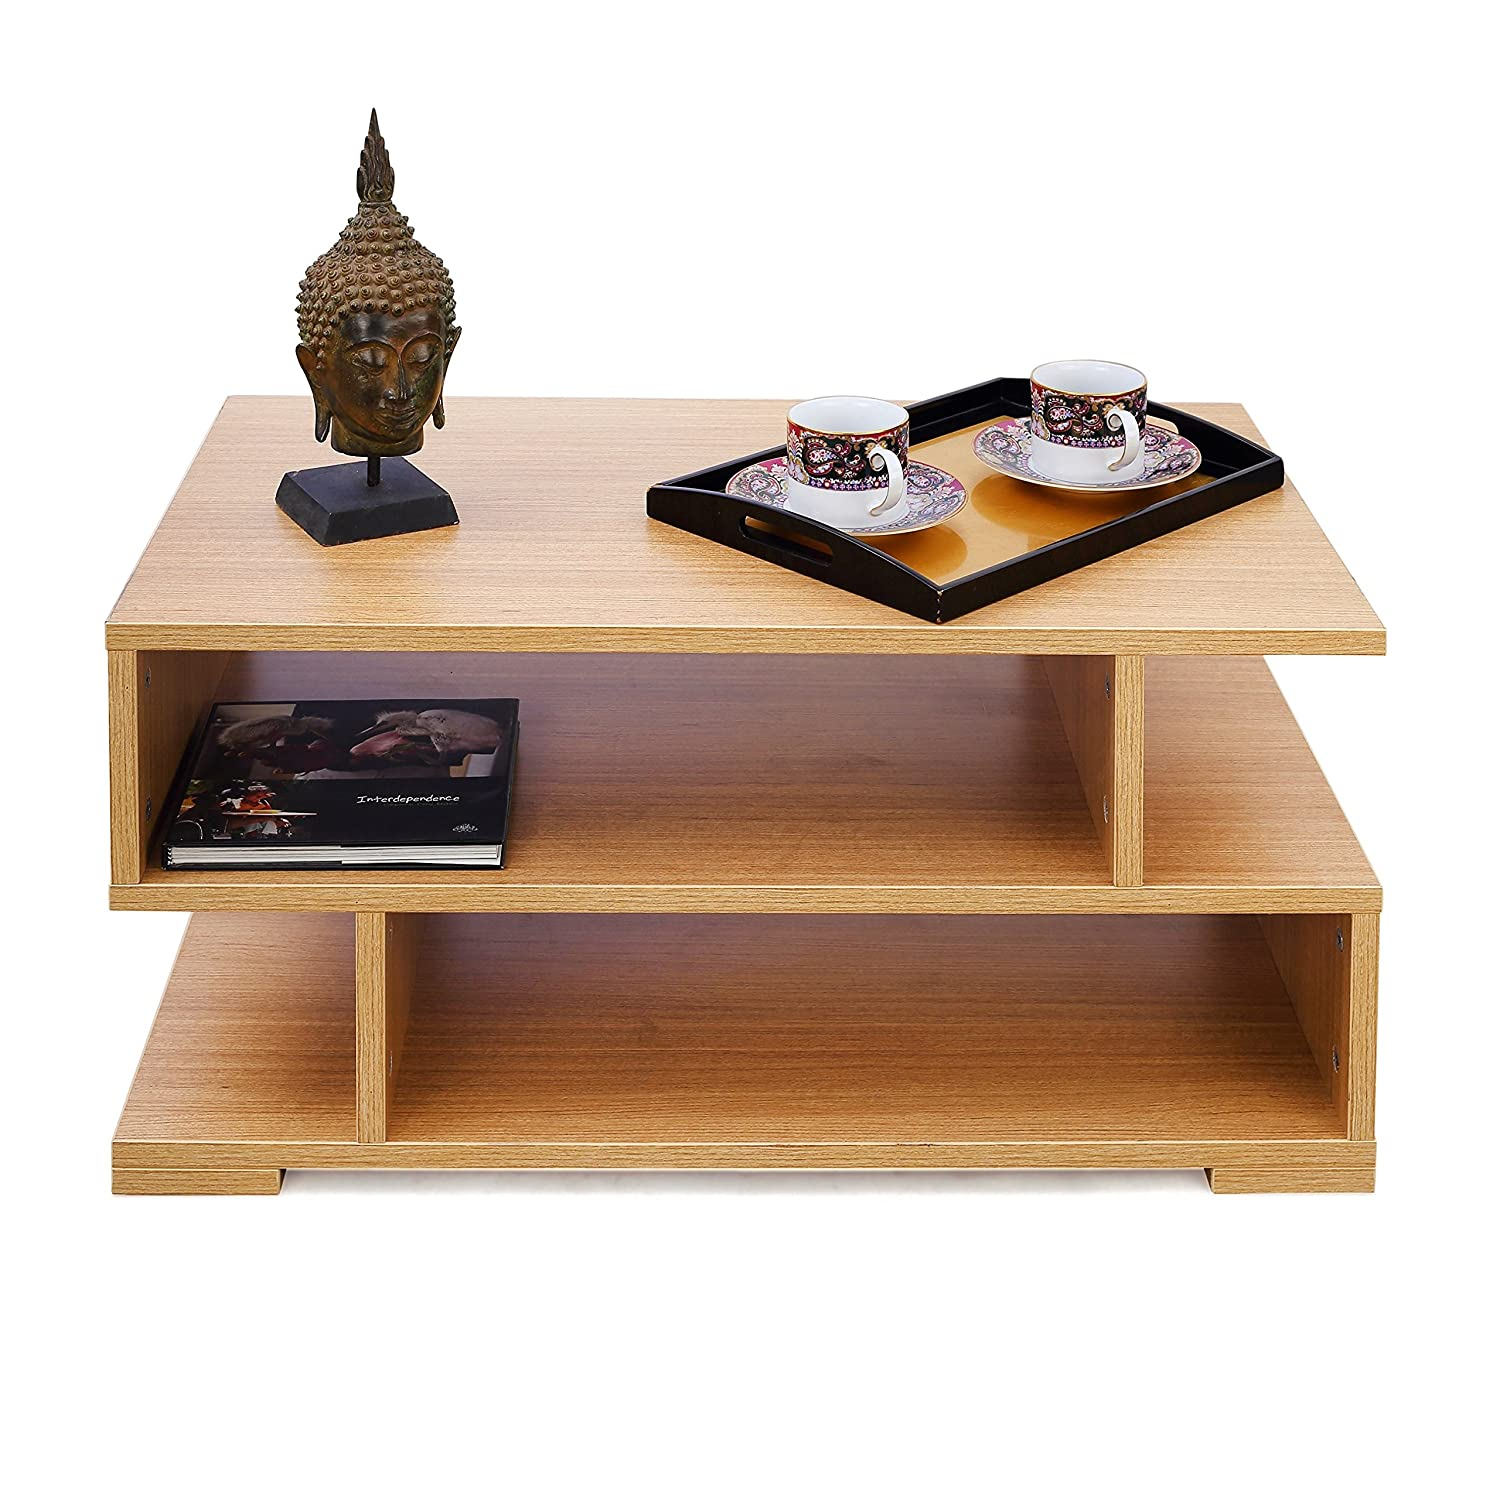 Forzza daniel tv unit small matt finish teak best for Furniture tipoi design